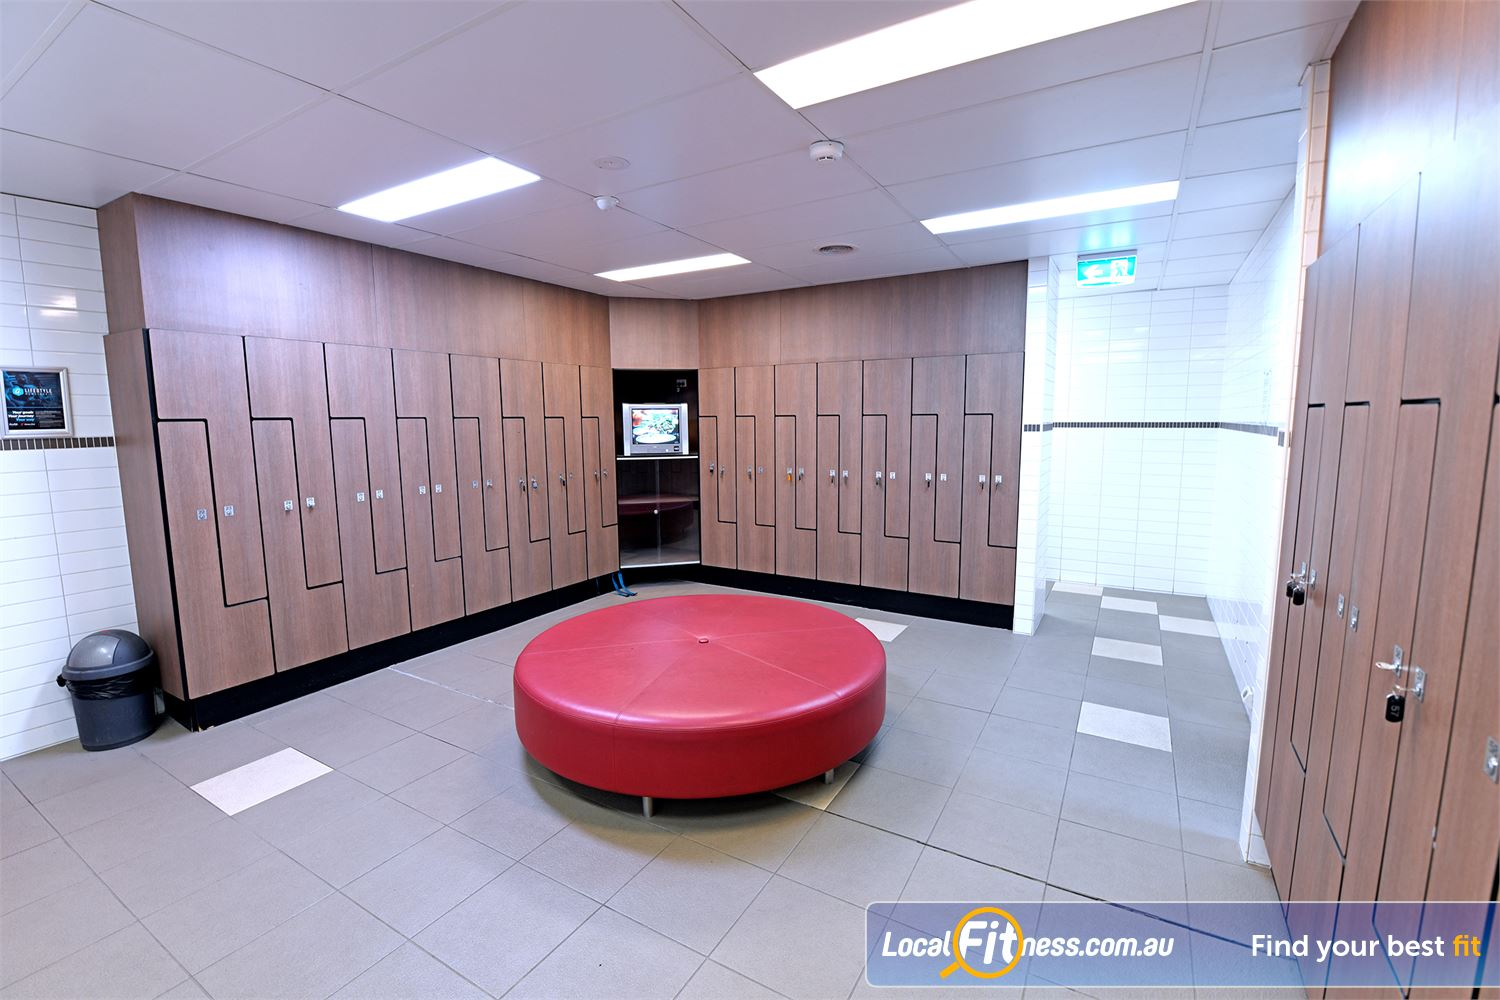 Goodlife Health Clubs Near Moolap Our Geelong gym includes exclusive changeroom with relaxation faciltiies.